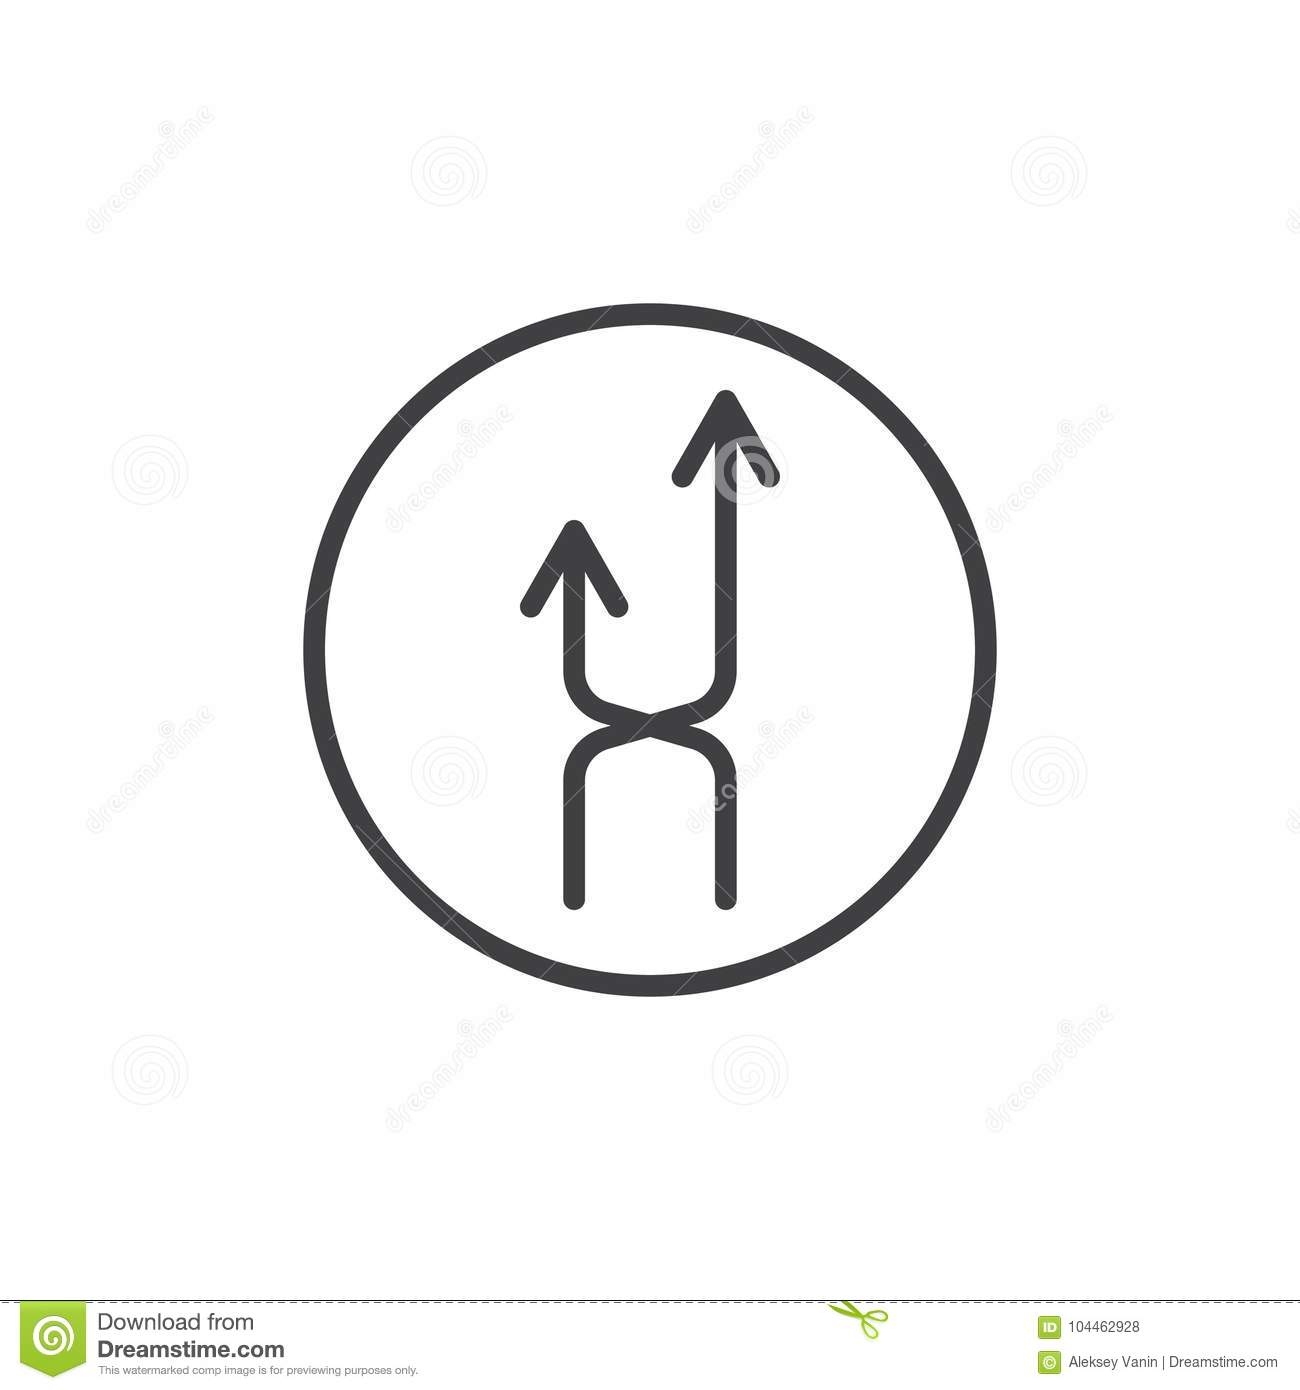 Intersection Arrows Line Icon Stock Vector Illustration Of Recycle